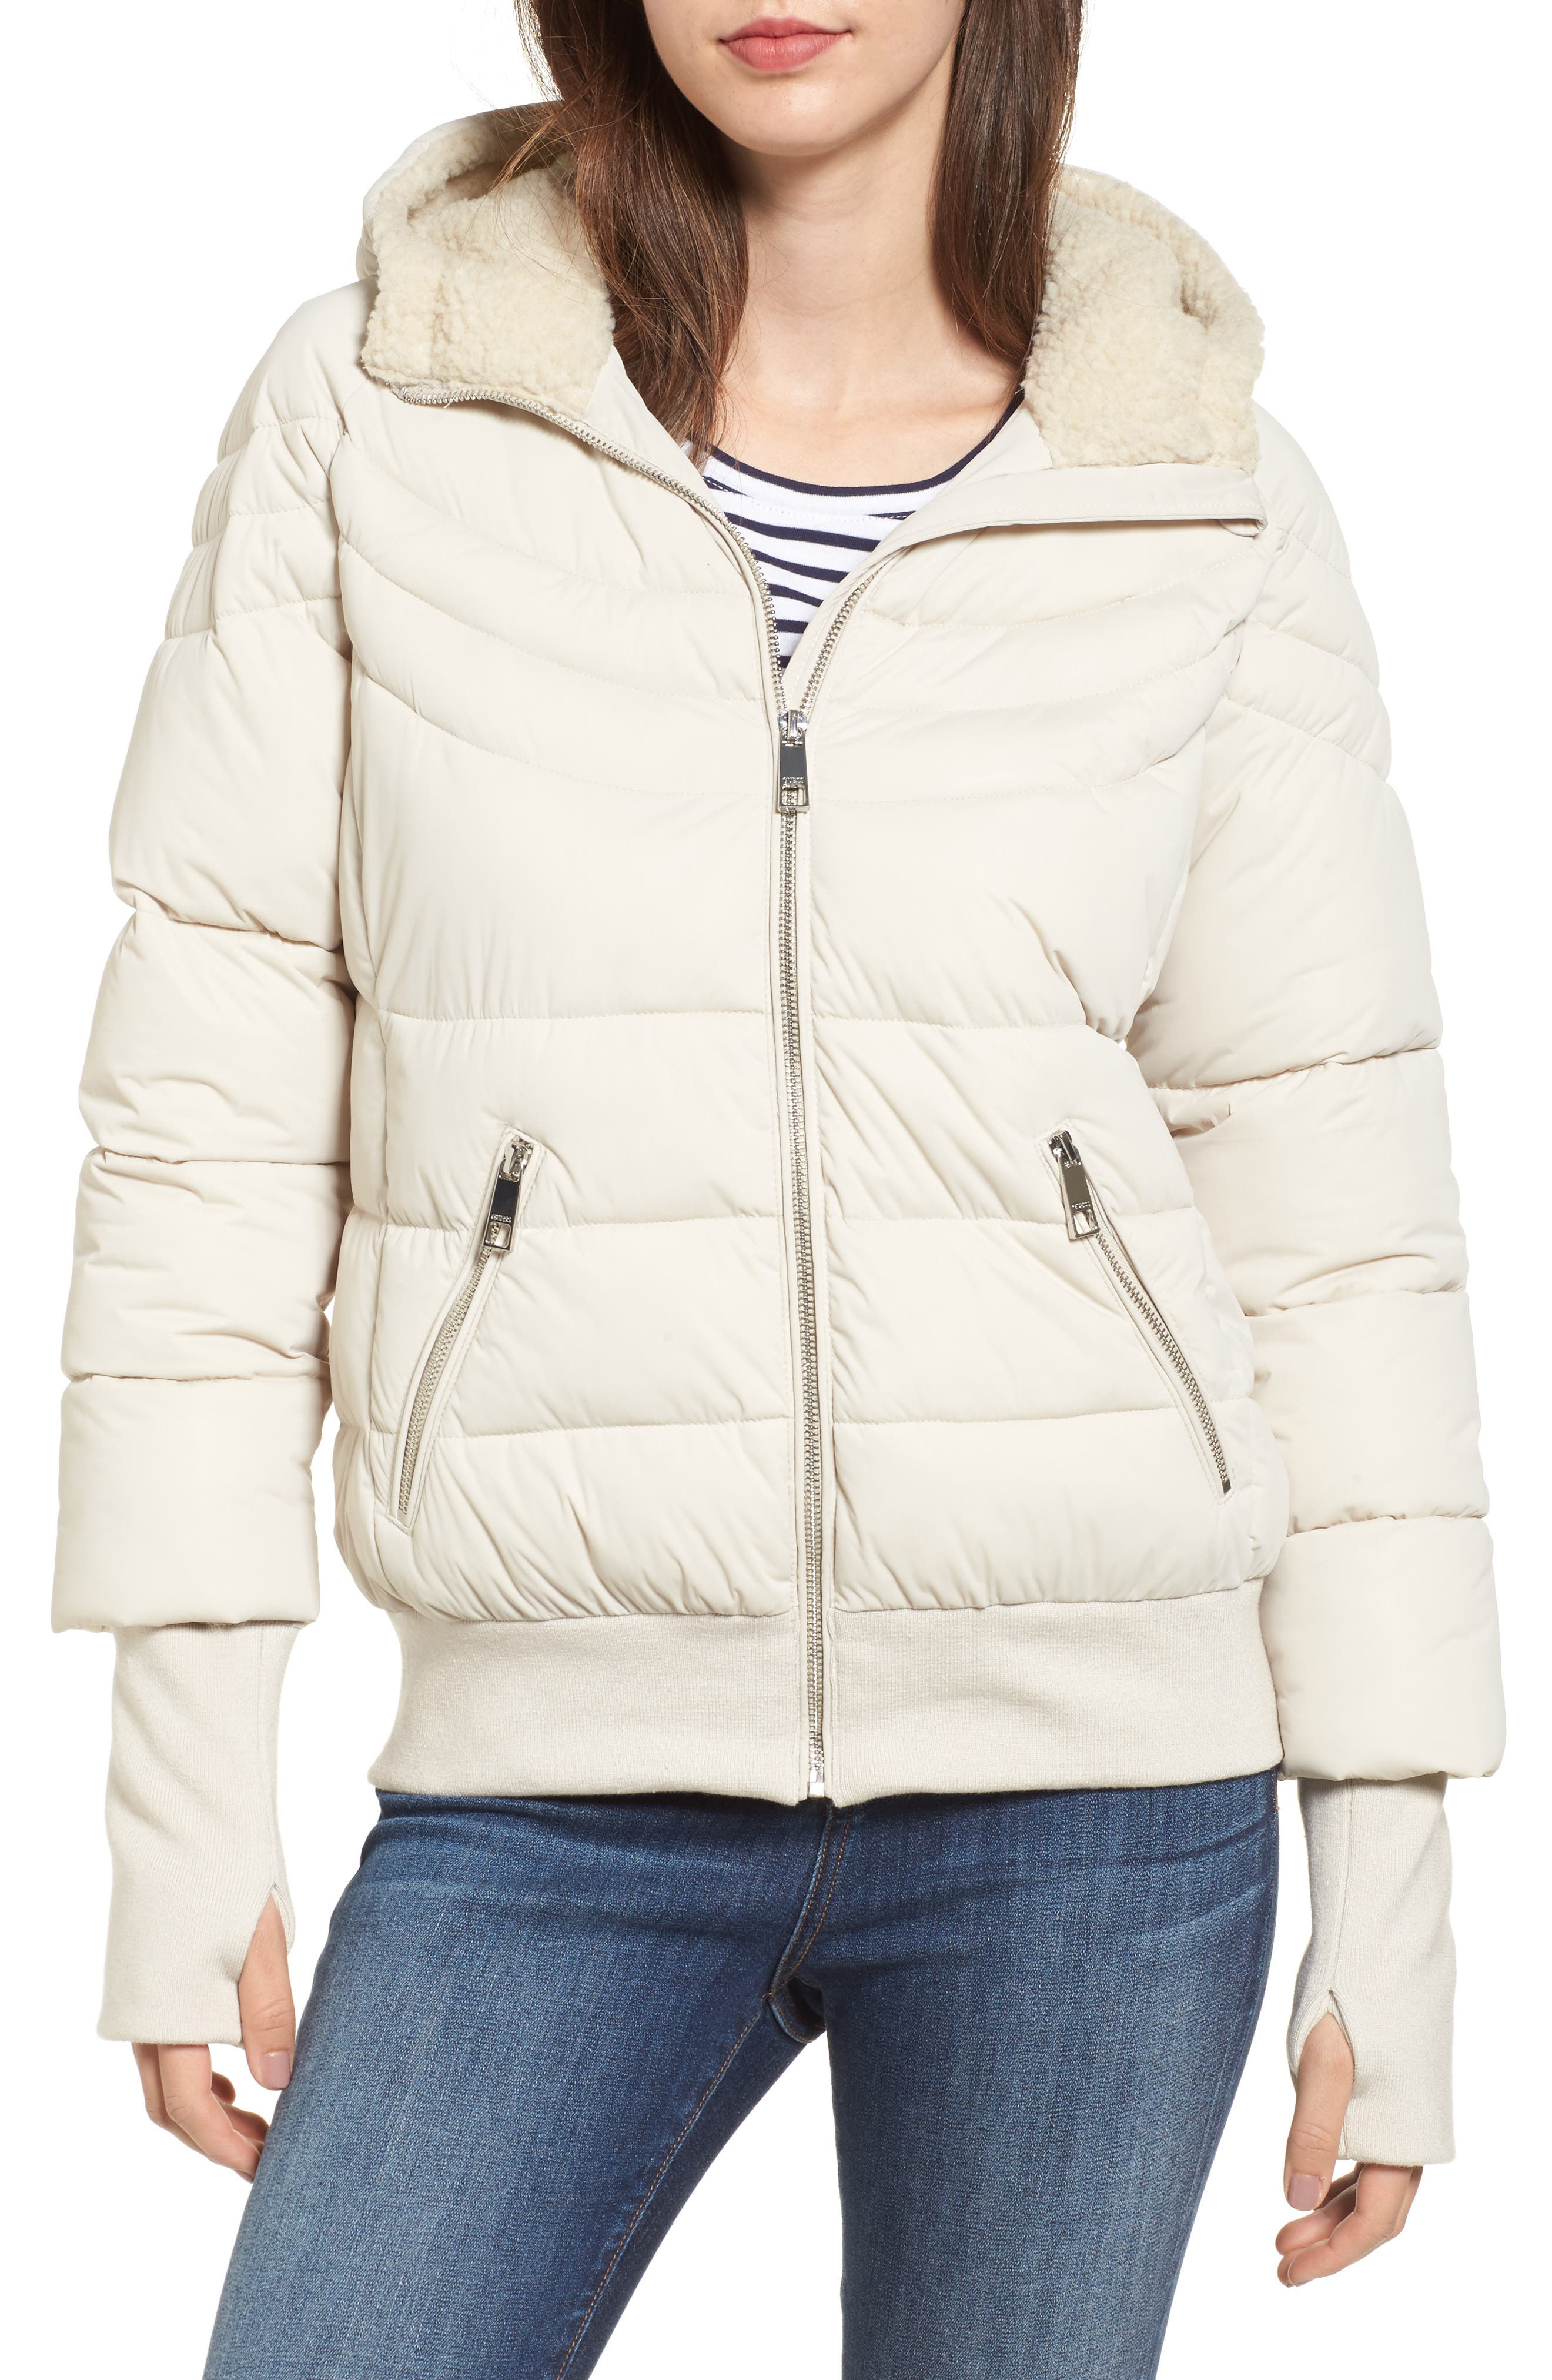 Alternate Image 1 Selected - GUESS Oversize Hooded Puffer Jacket with Knit & Faux Shearling Trim